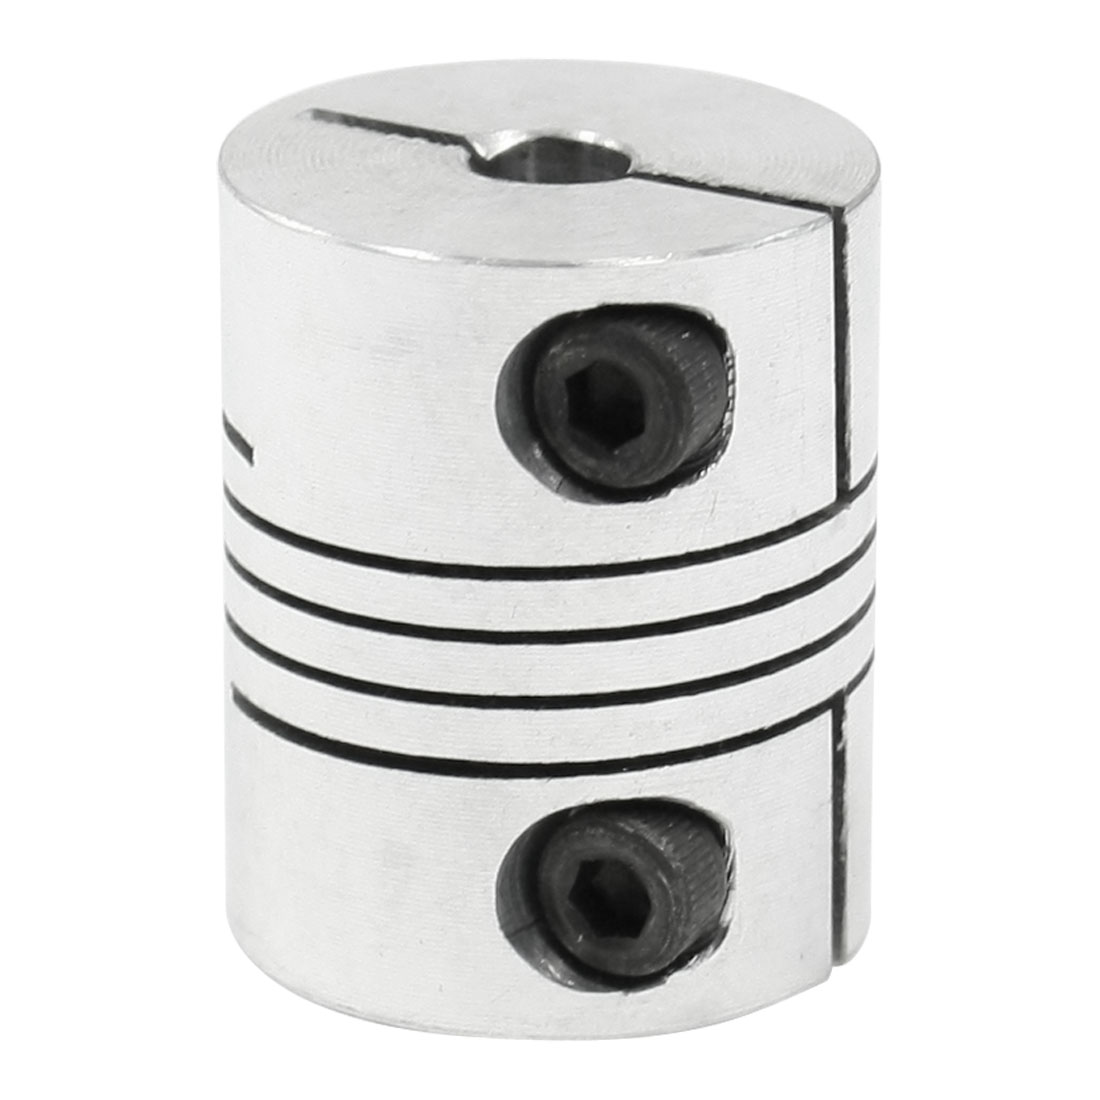 5mm to 6mm CNC Stepper Motor Shaft Coupling Coupler for Encoder